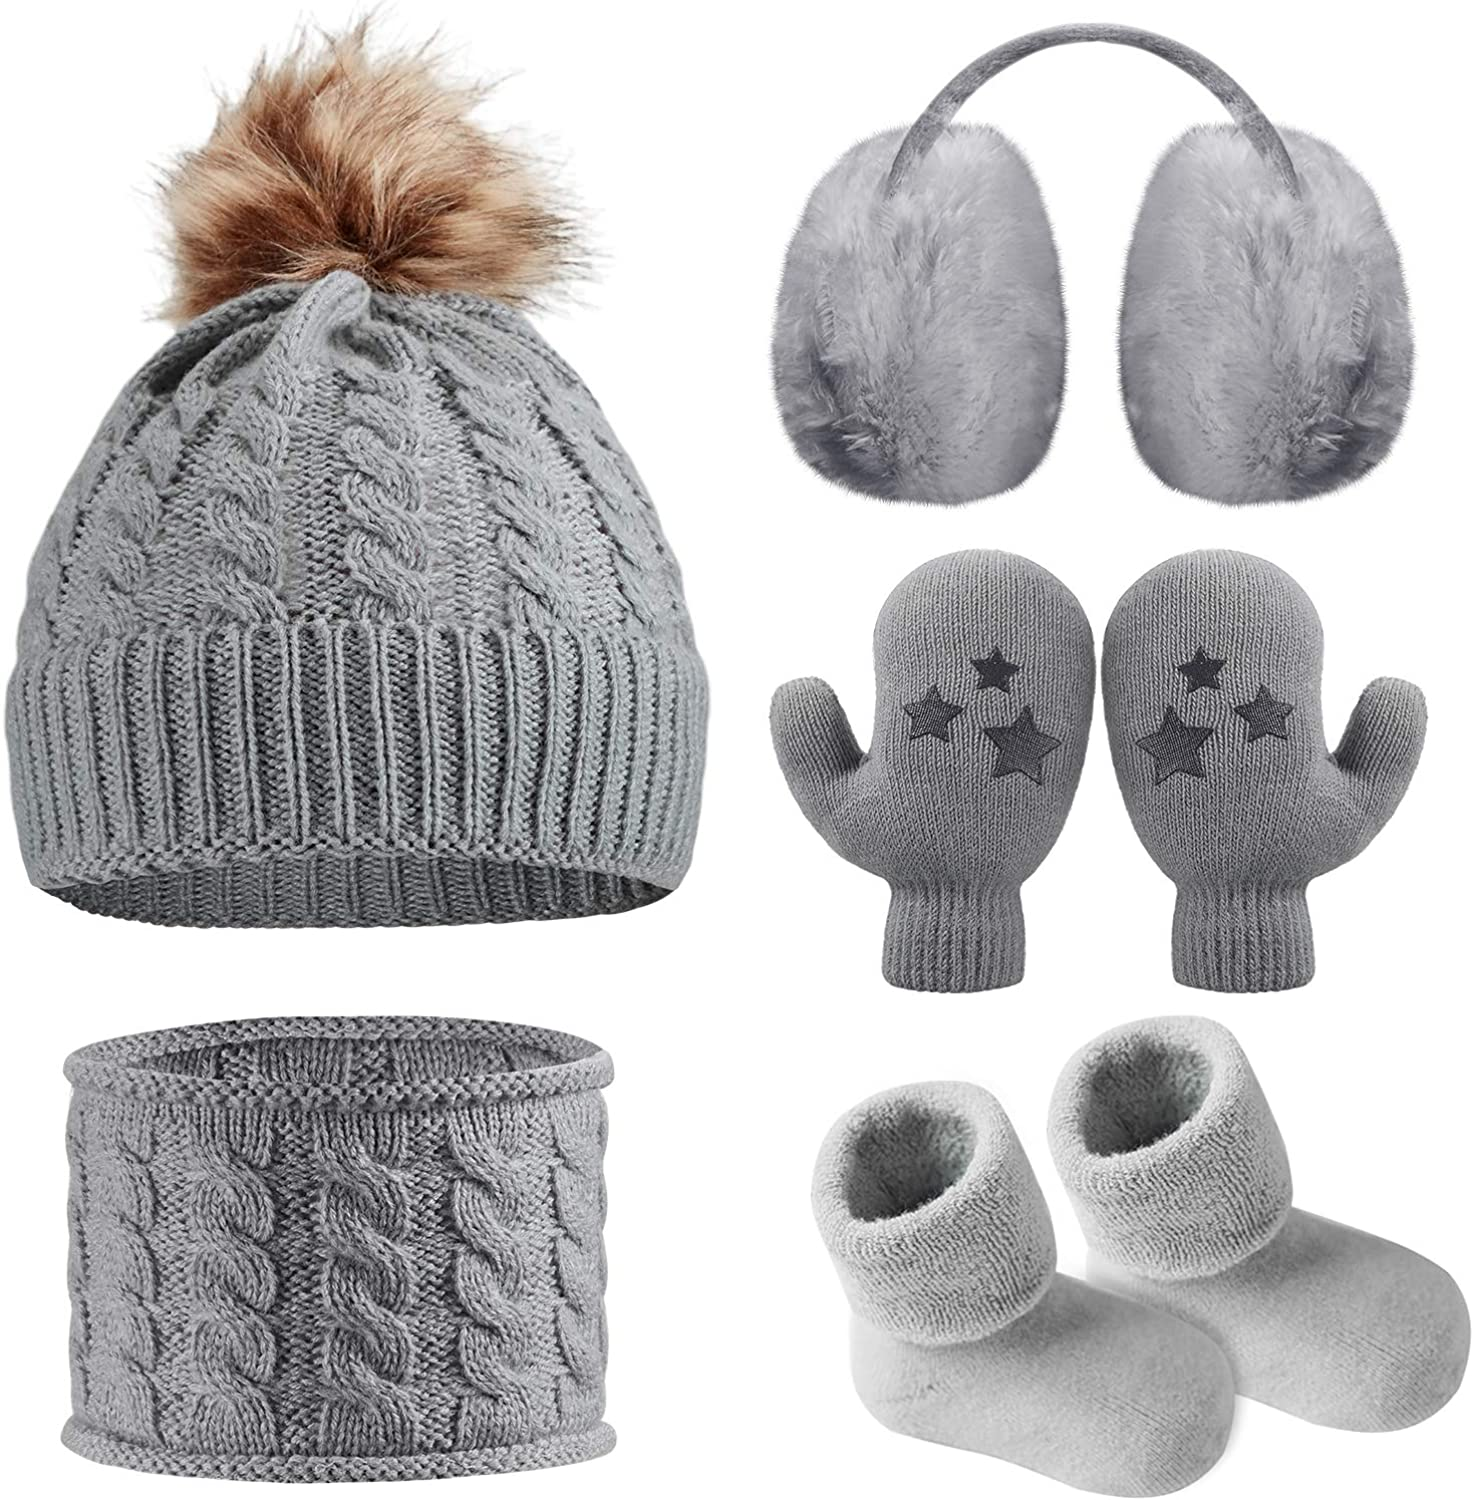 4 Pieces Kids Beanie Hat Scarf Gloves Socks Set Knit Winter Warm Set for Toddler